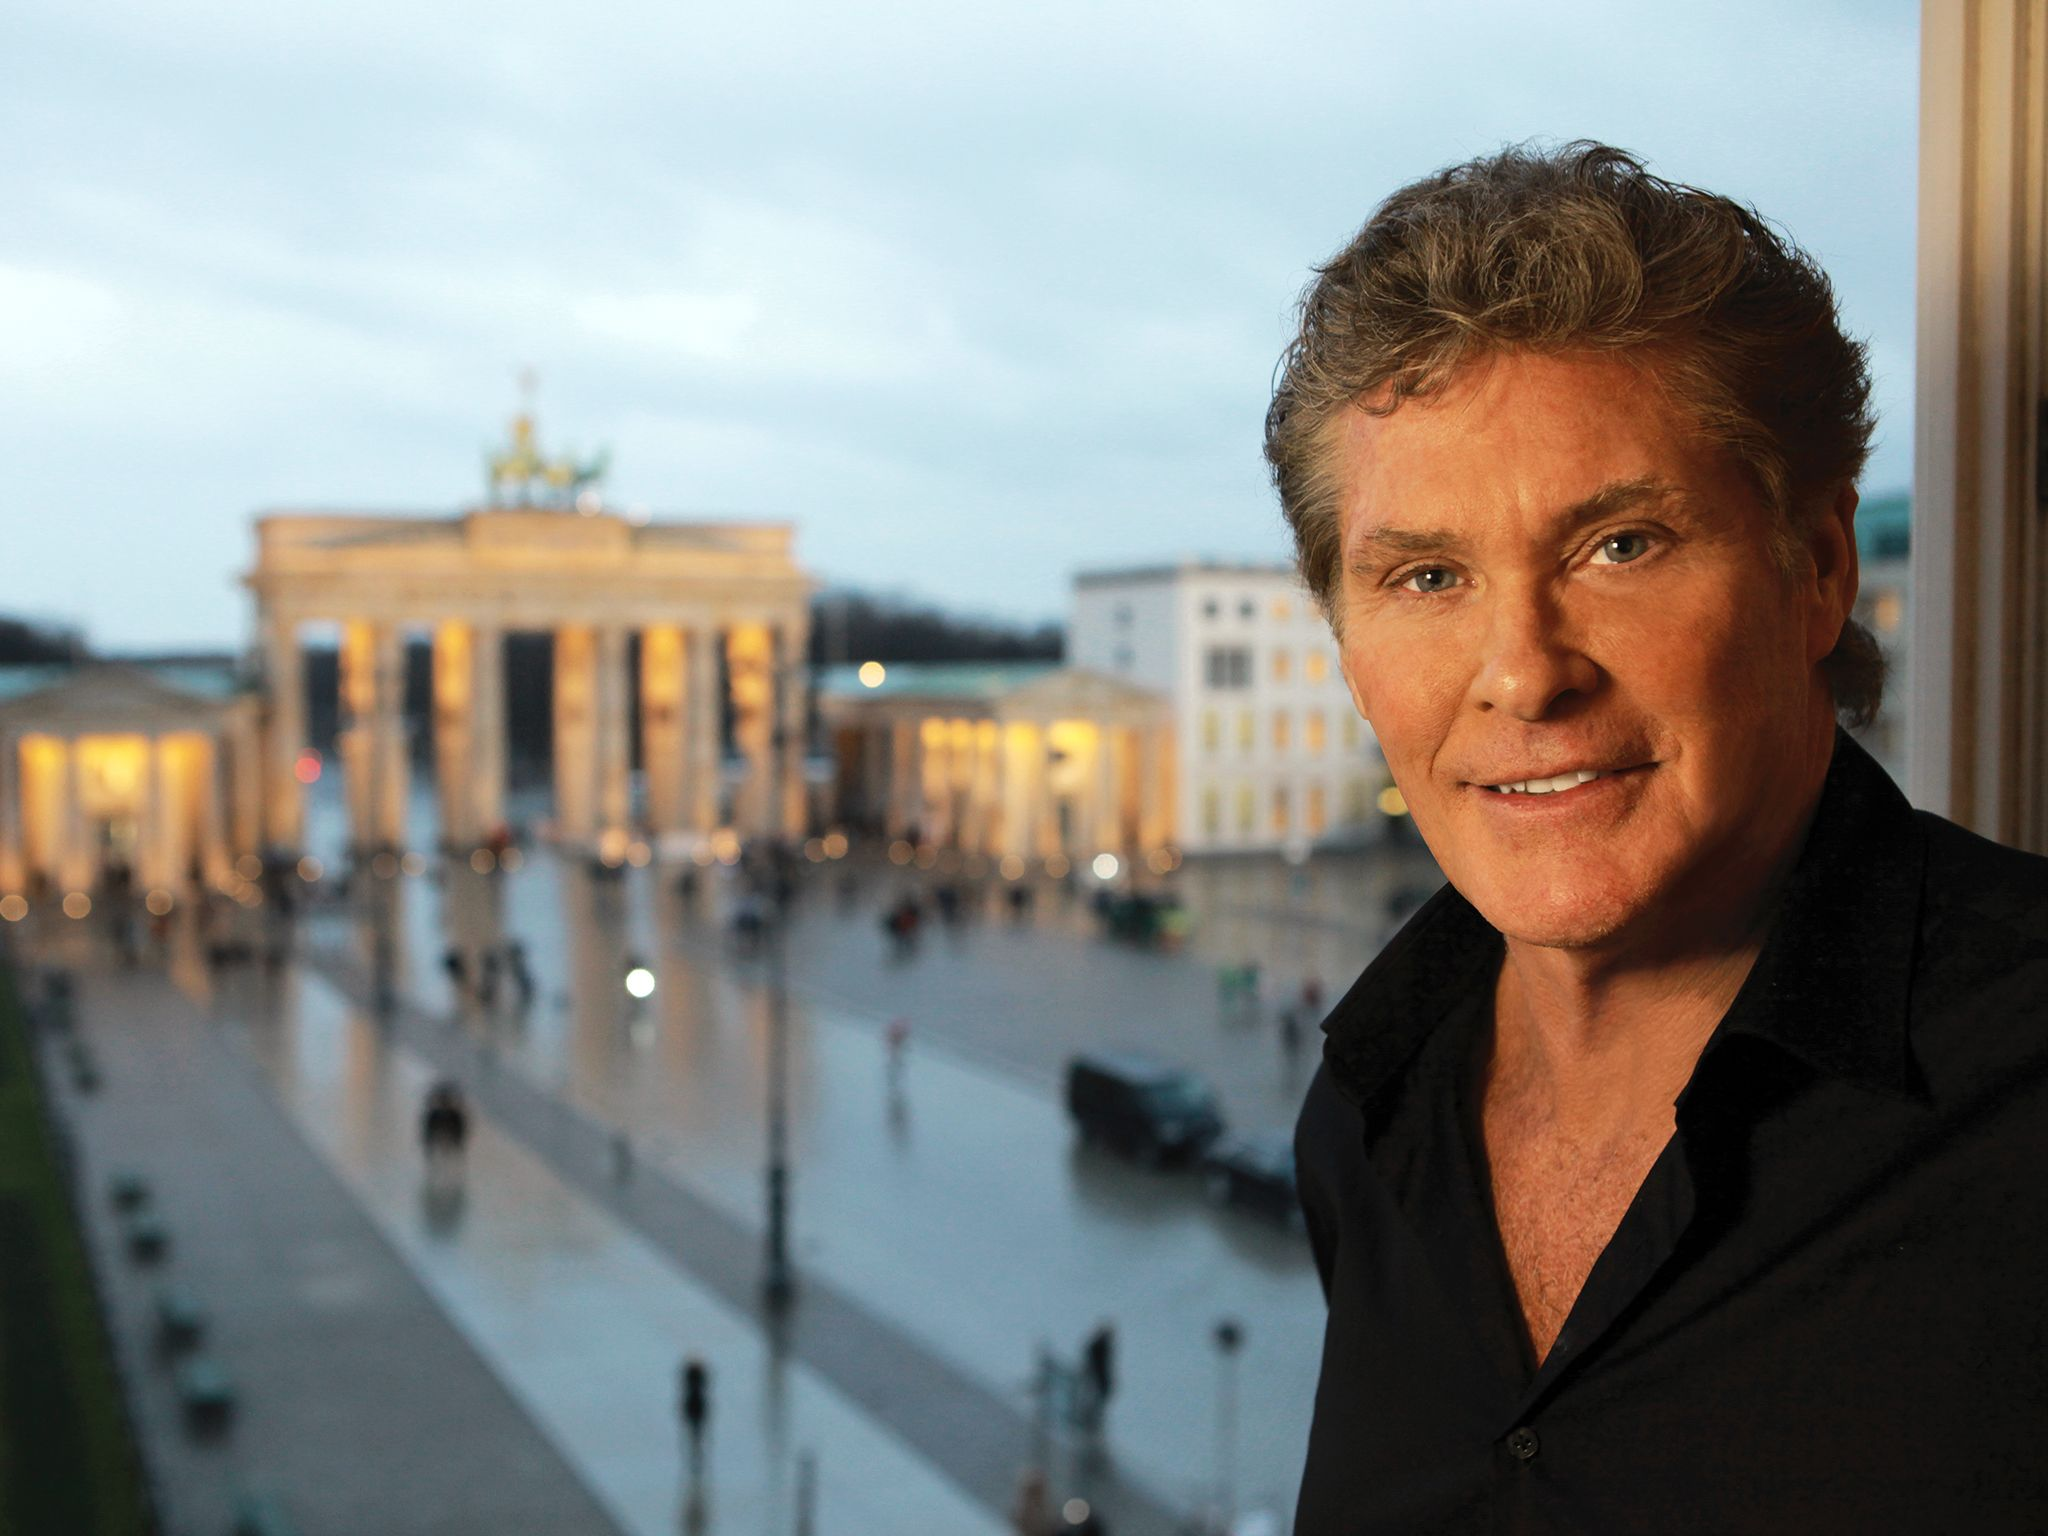 Berlin, Germany: David Hasselhoff in his hotel room overlooking the Brandenburg Gate. This image... [Photo of the day - November 2014]